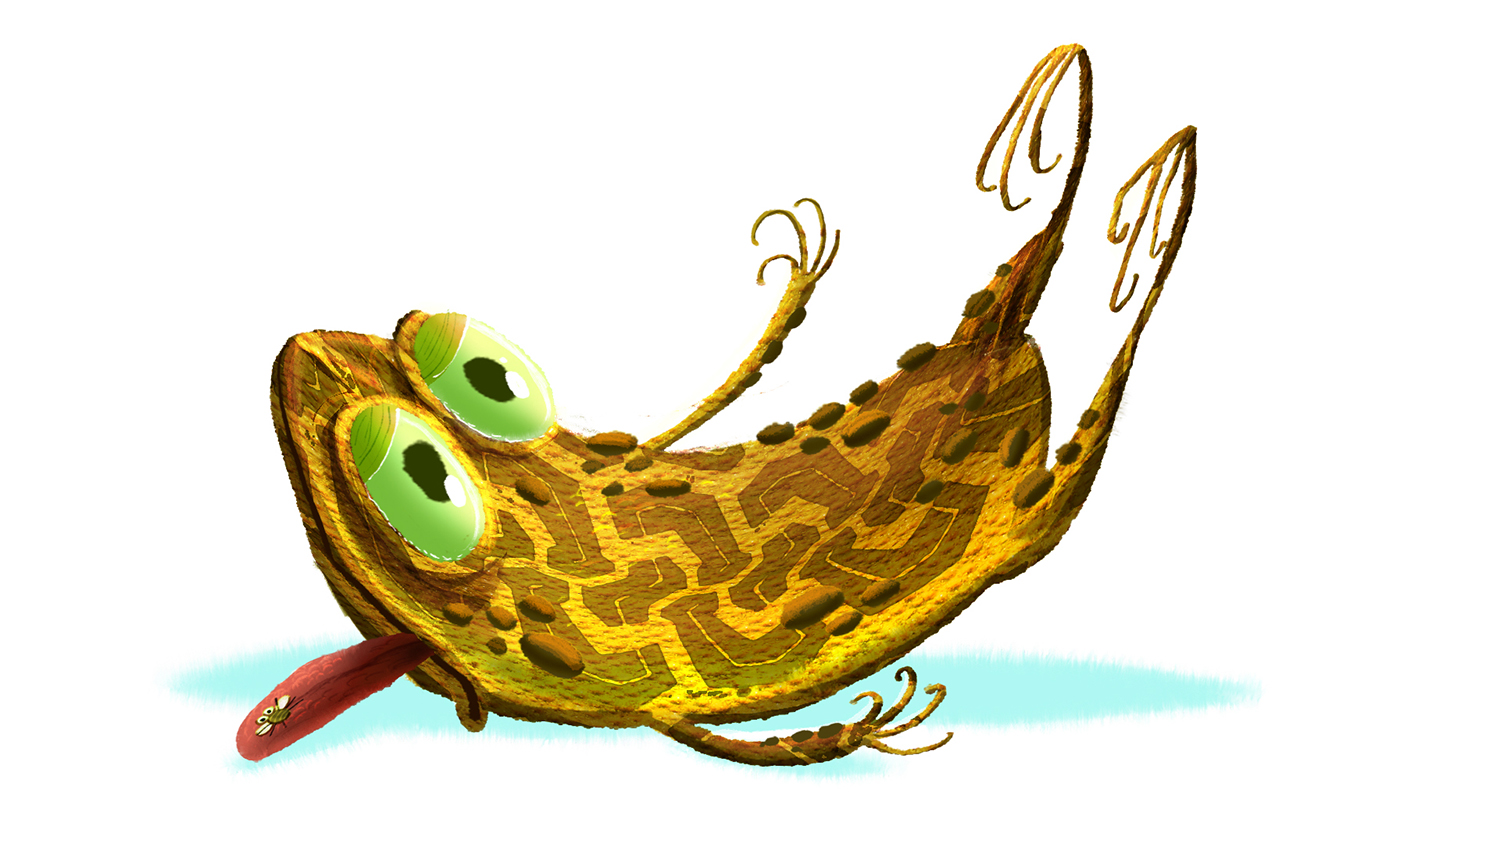 squished toad 3.jpg